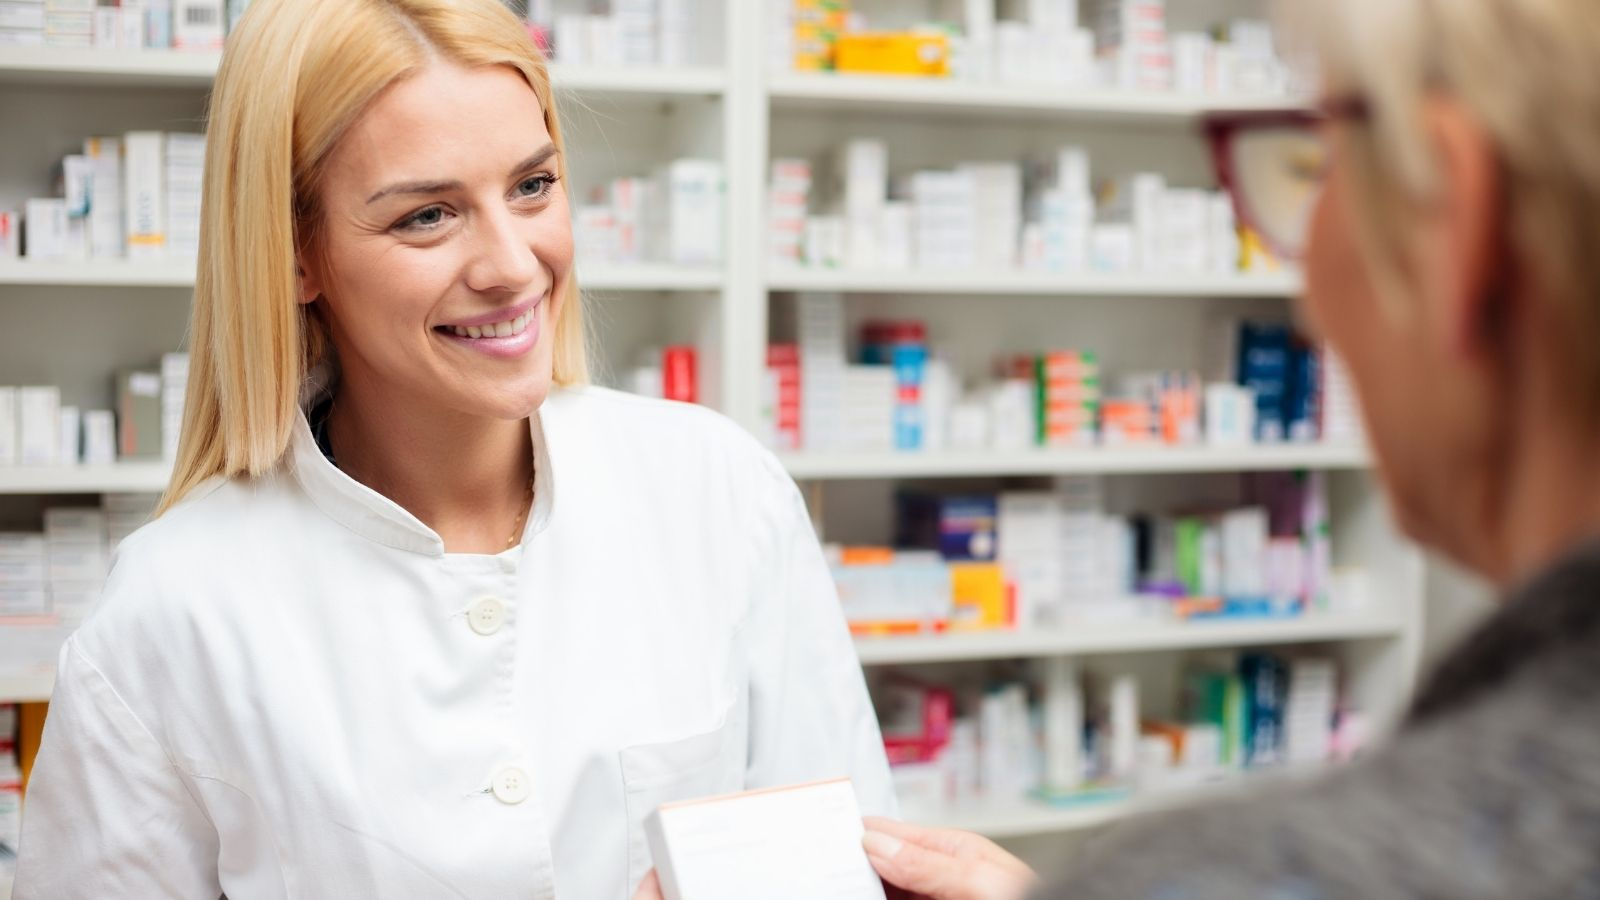 What Does a Pharmacist Do? Taking a Look at the Role of the Pharmacist